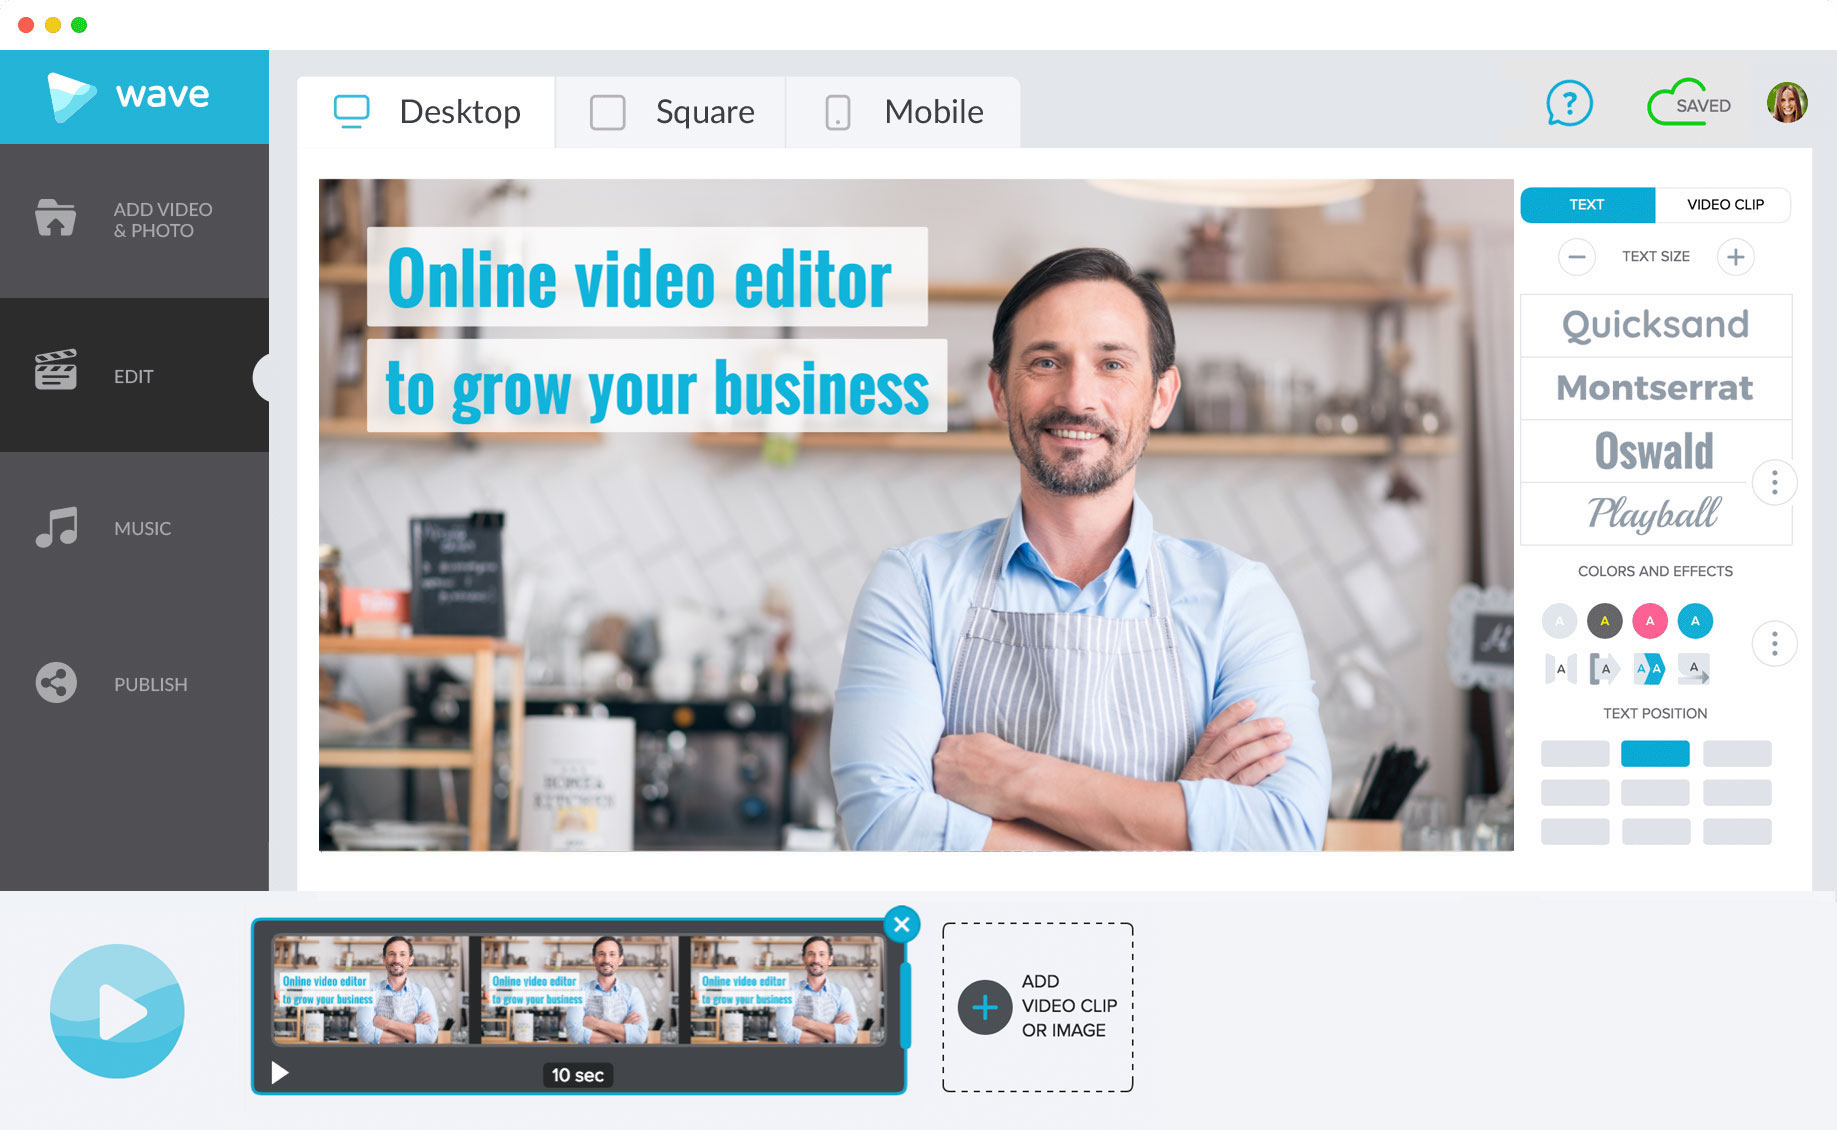 Wave.video is an online video editor for any business and purpose